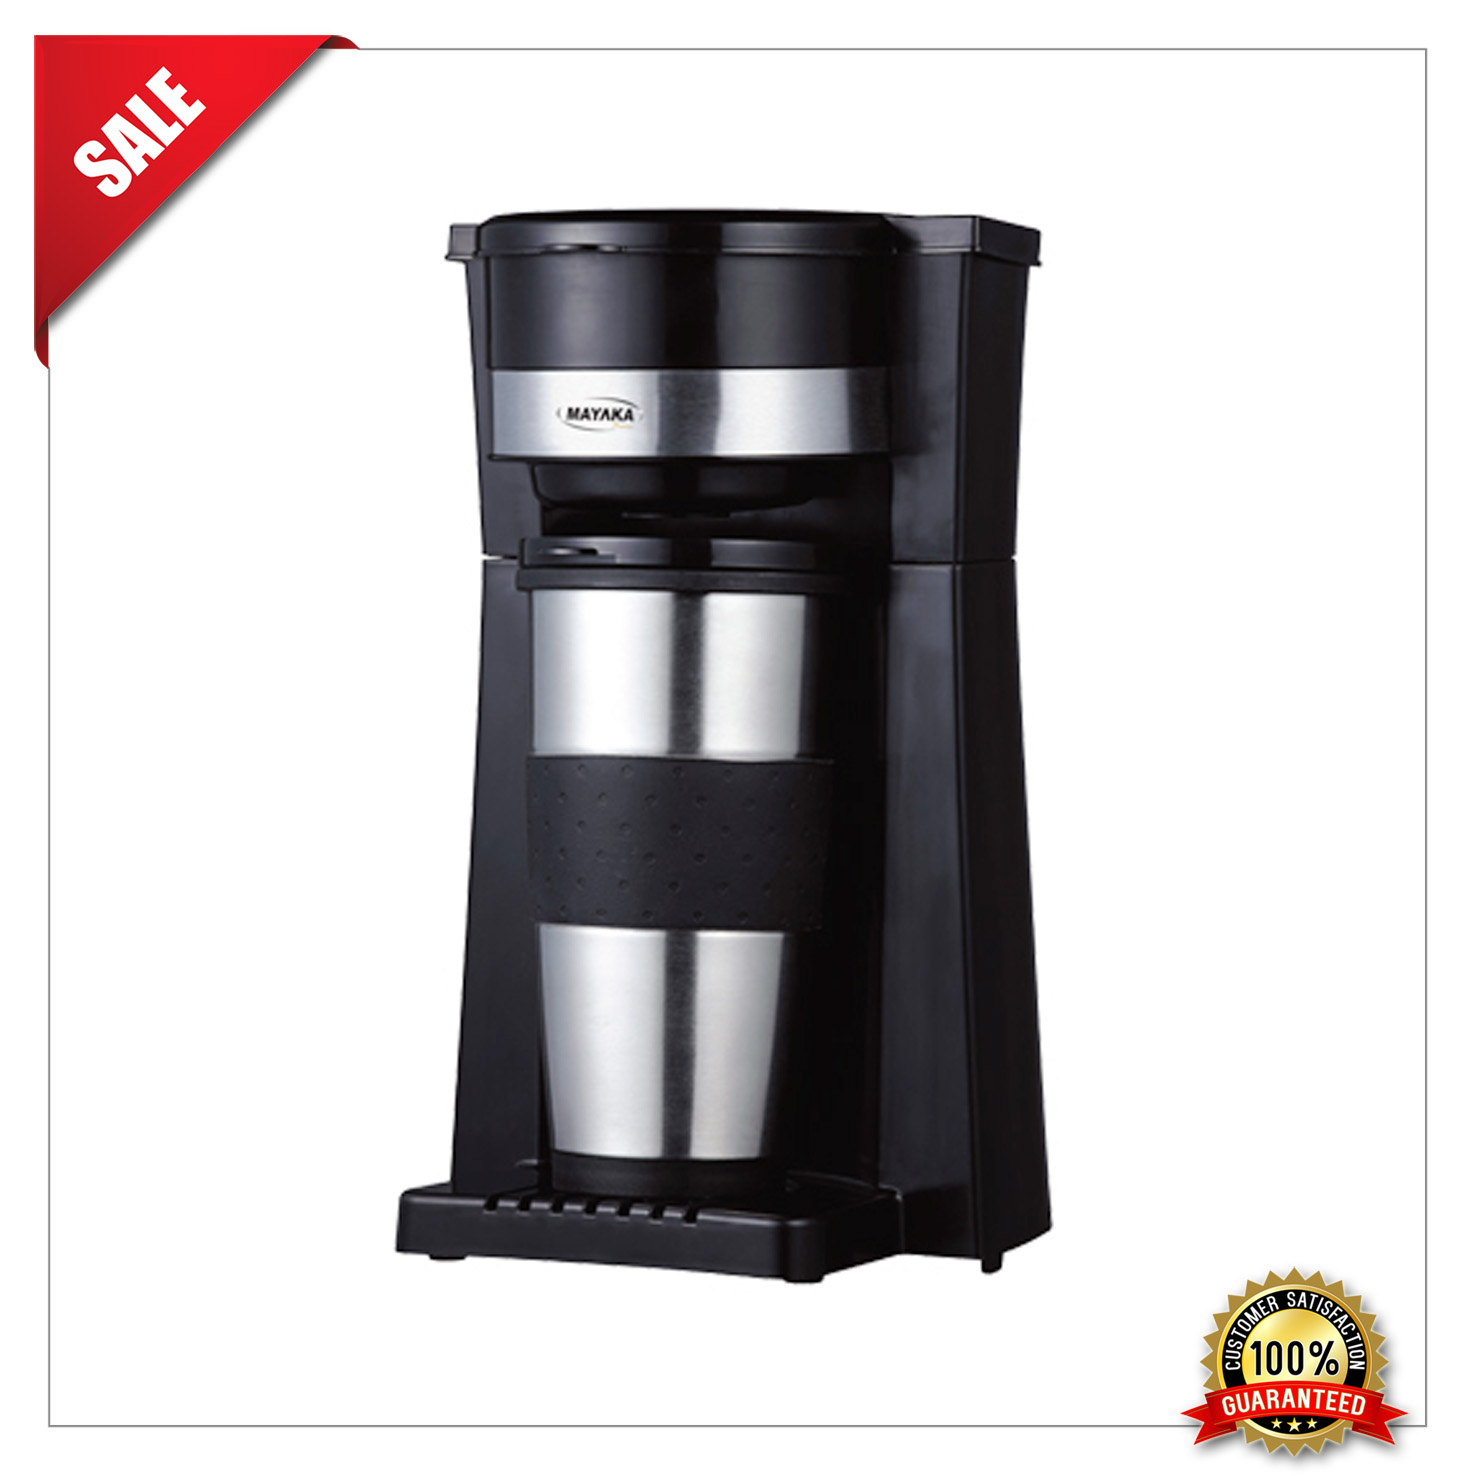 PRODUCT PROFILE 1 – CM 4011 XB COFFEE MAKER